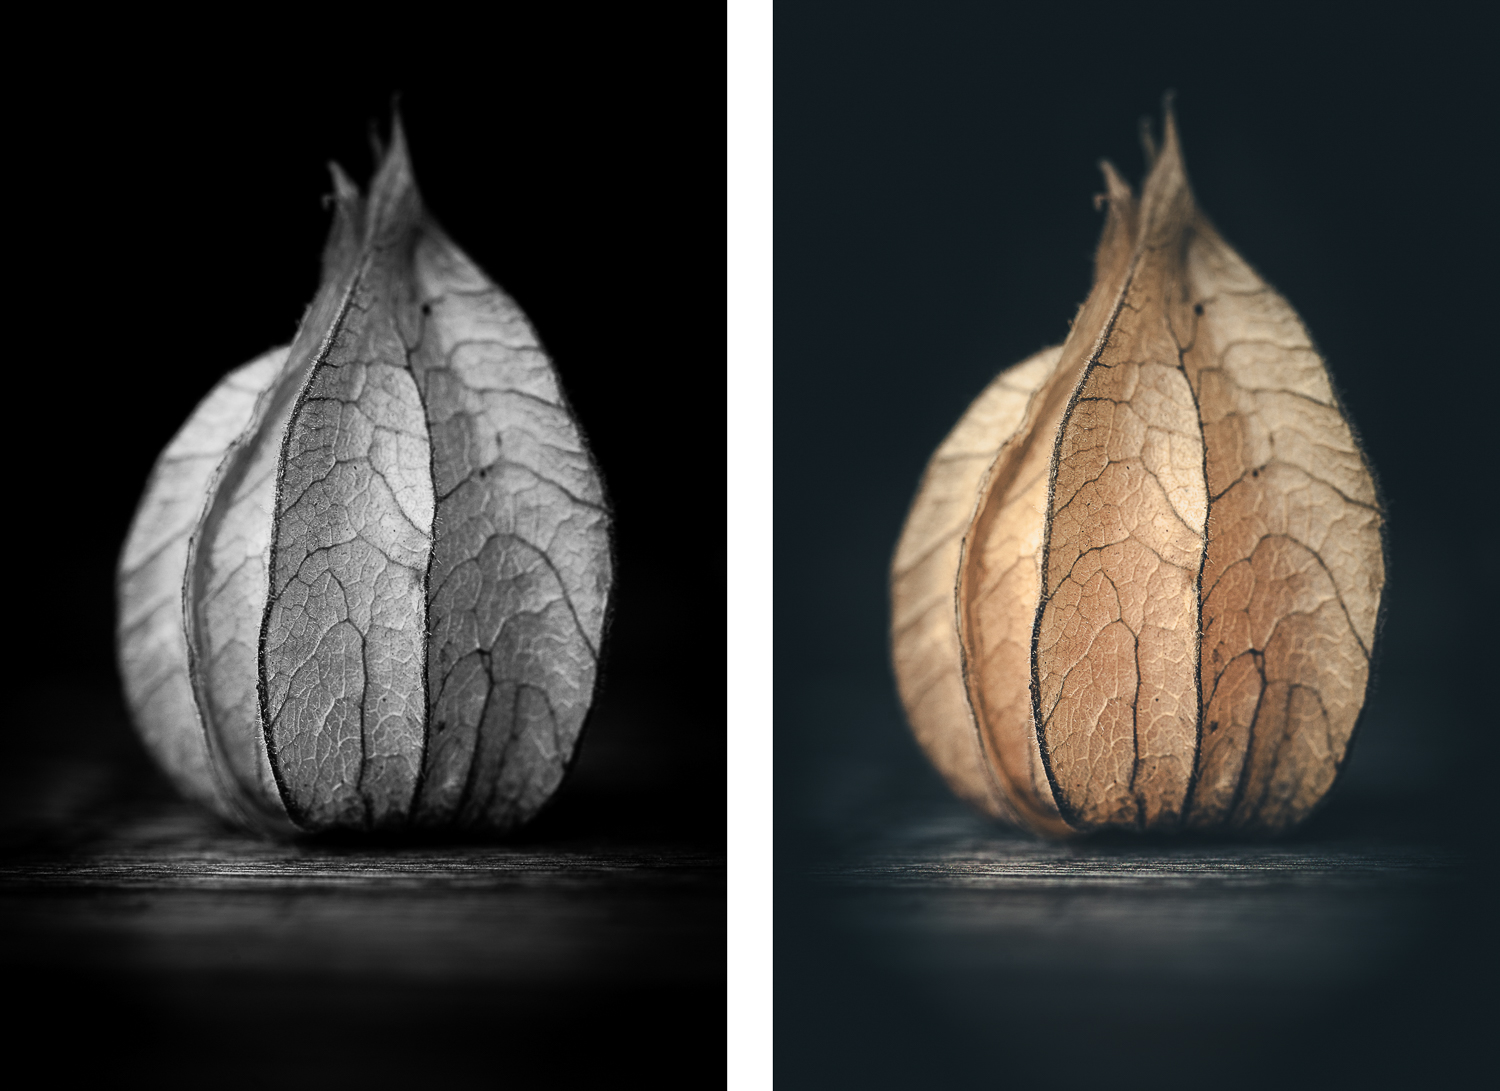 Physalis bw color - How to Create Fine Art Images from the Mundane